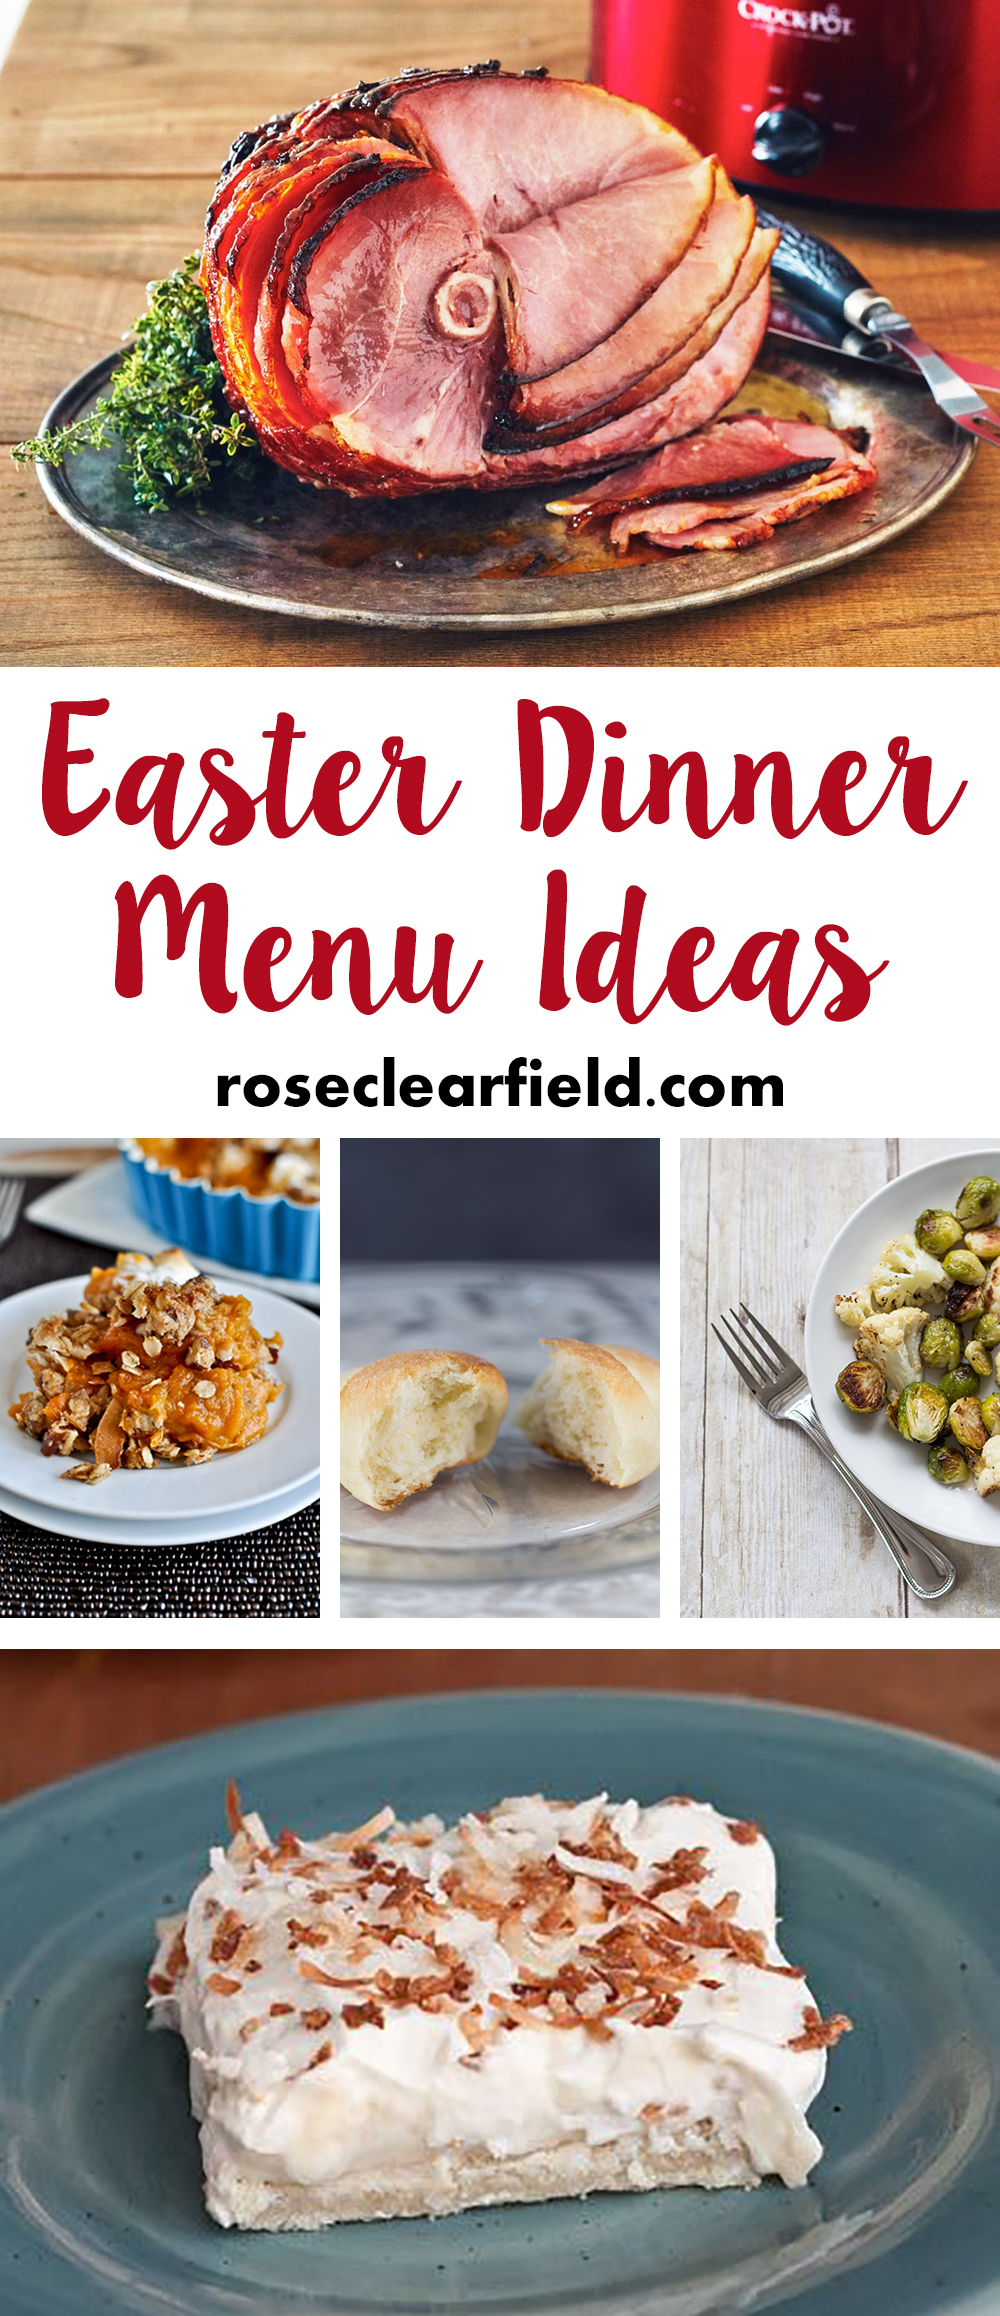 Easter Dinner Menu Ideas | http://www.roseclearfield.com